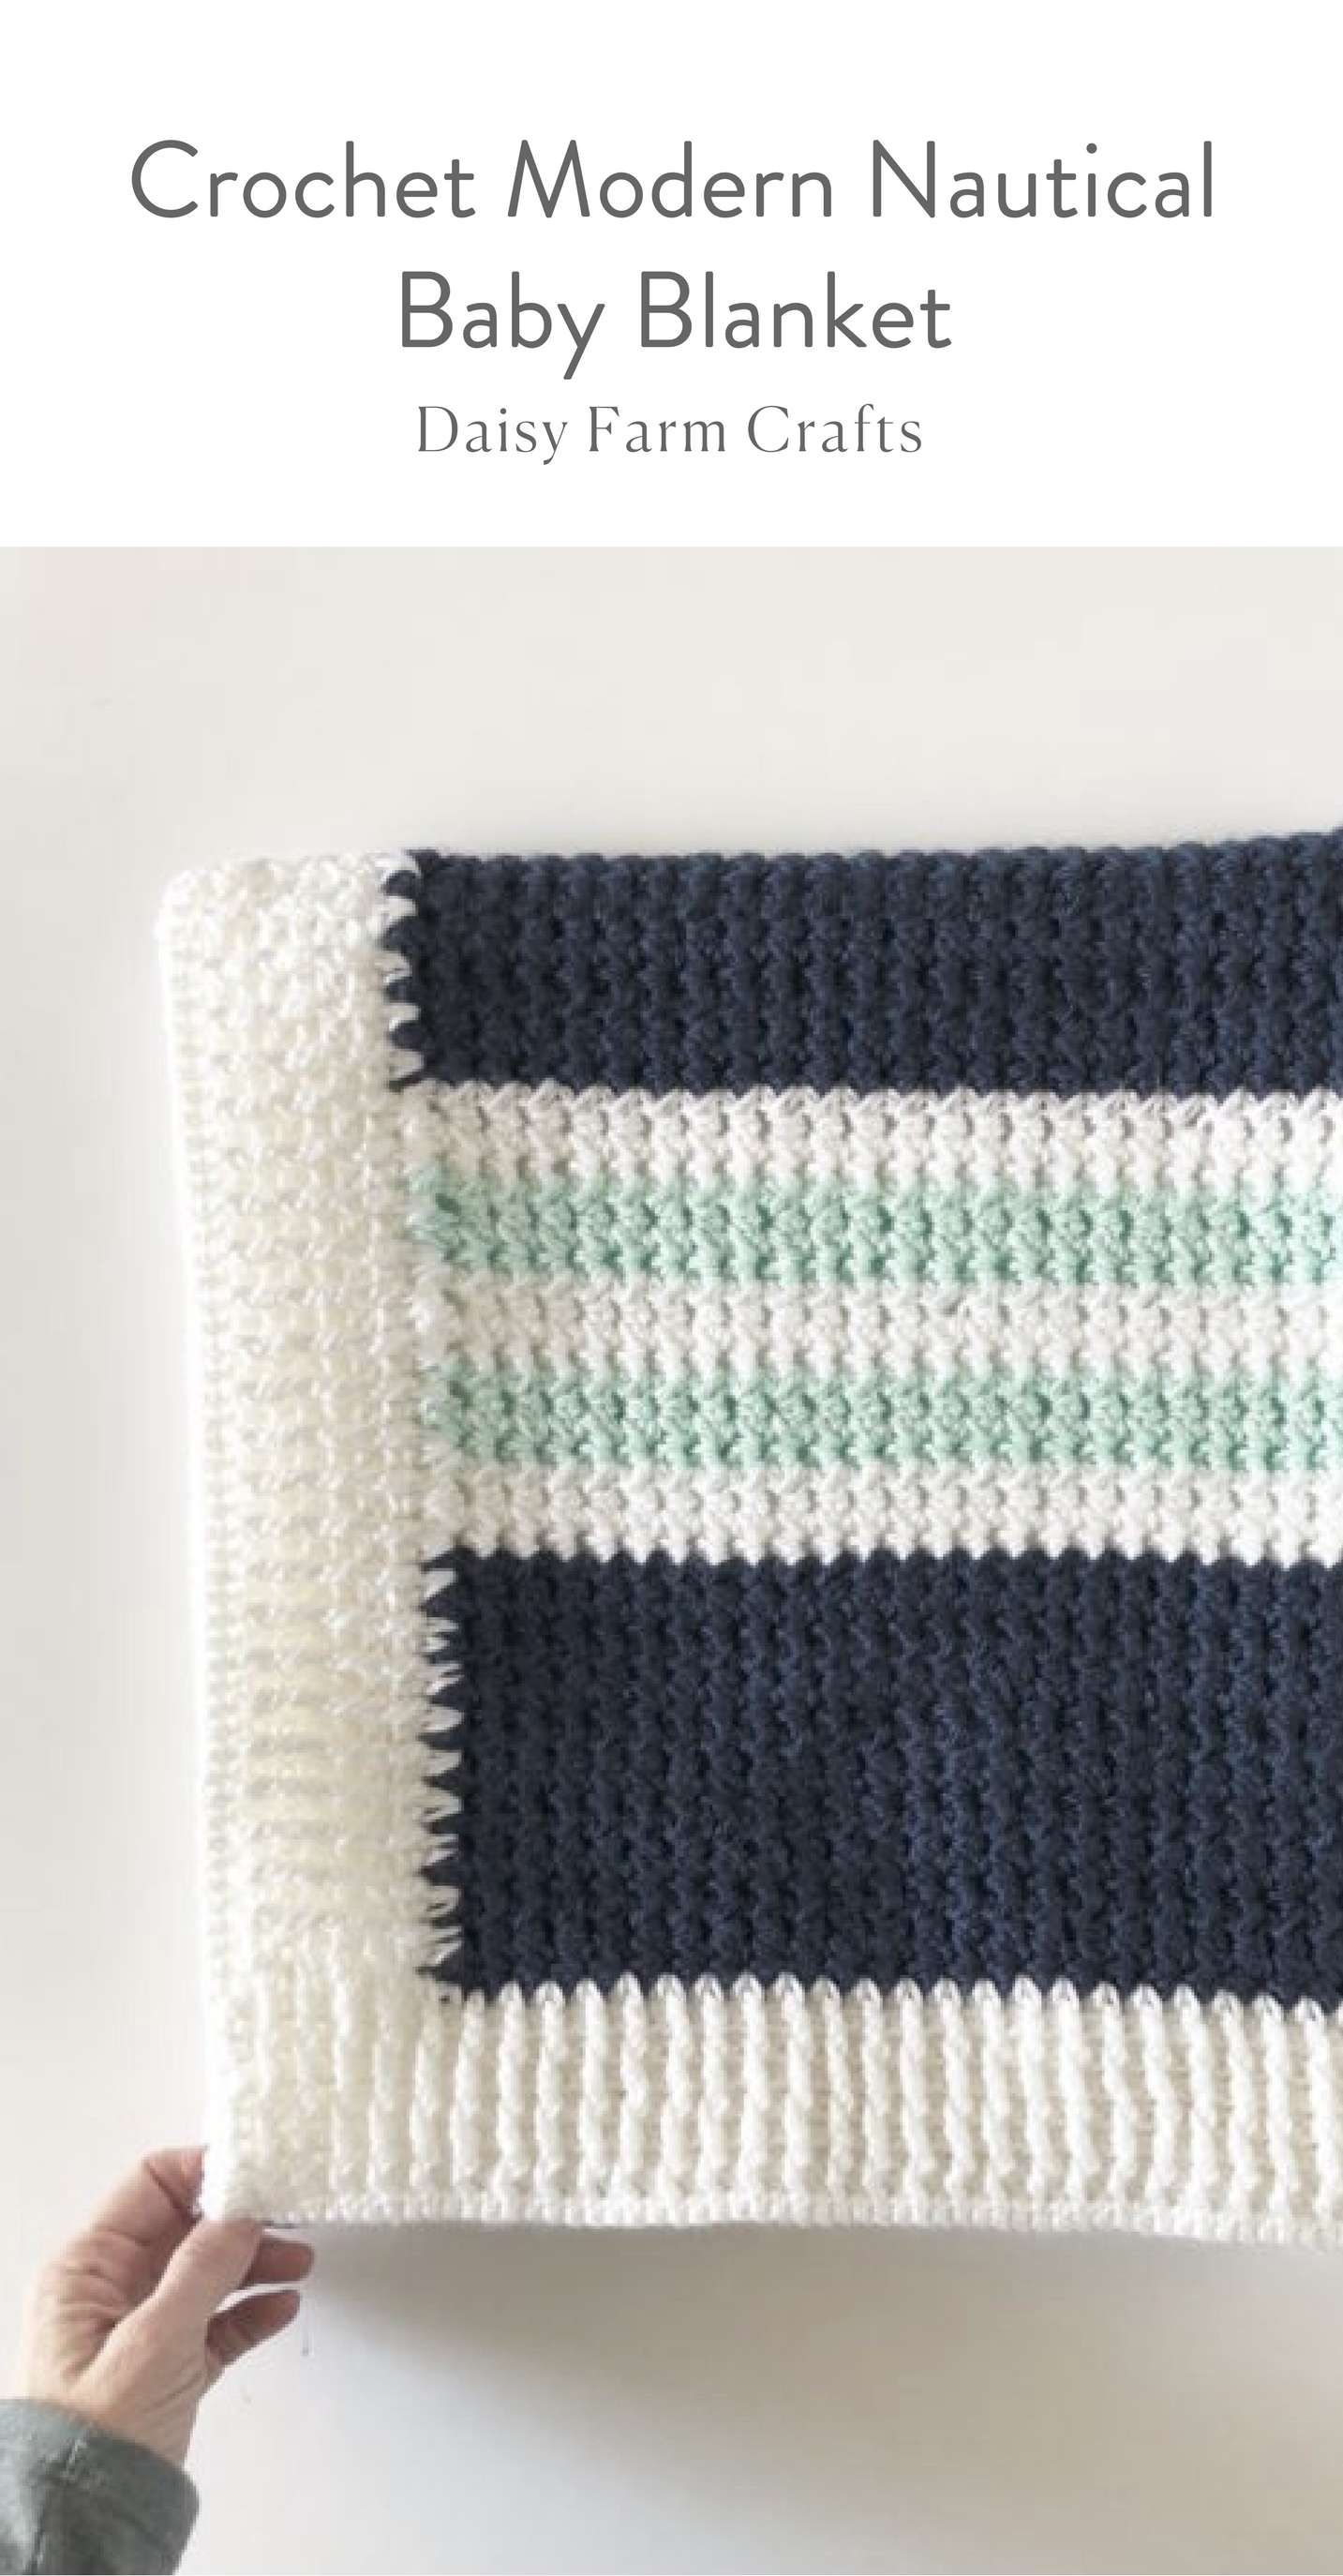 Free Pattern - Crochet Modern Nautical Baby Blanket | Afghans ...